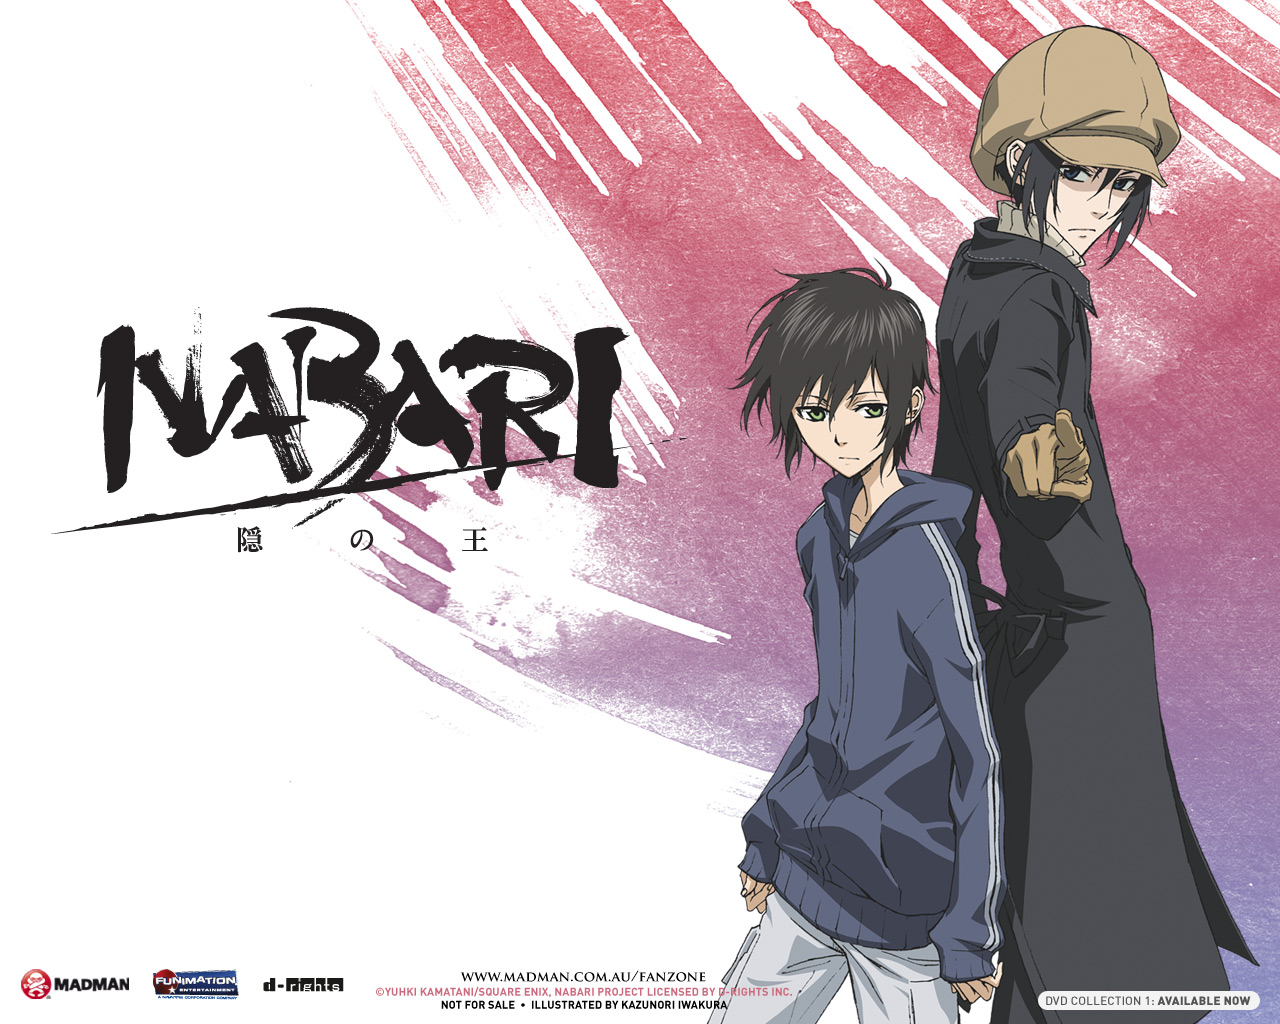 Star: The Alter-Ego Writer: Nabari No Ou Anime Verdict! Nabari No Ou Characters